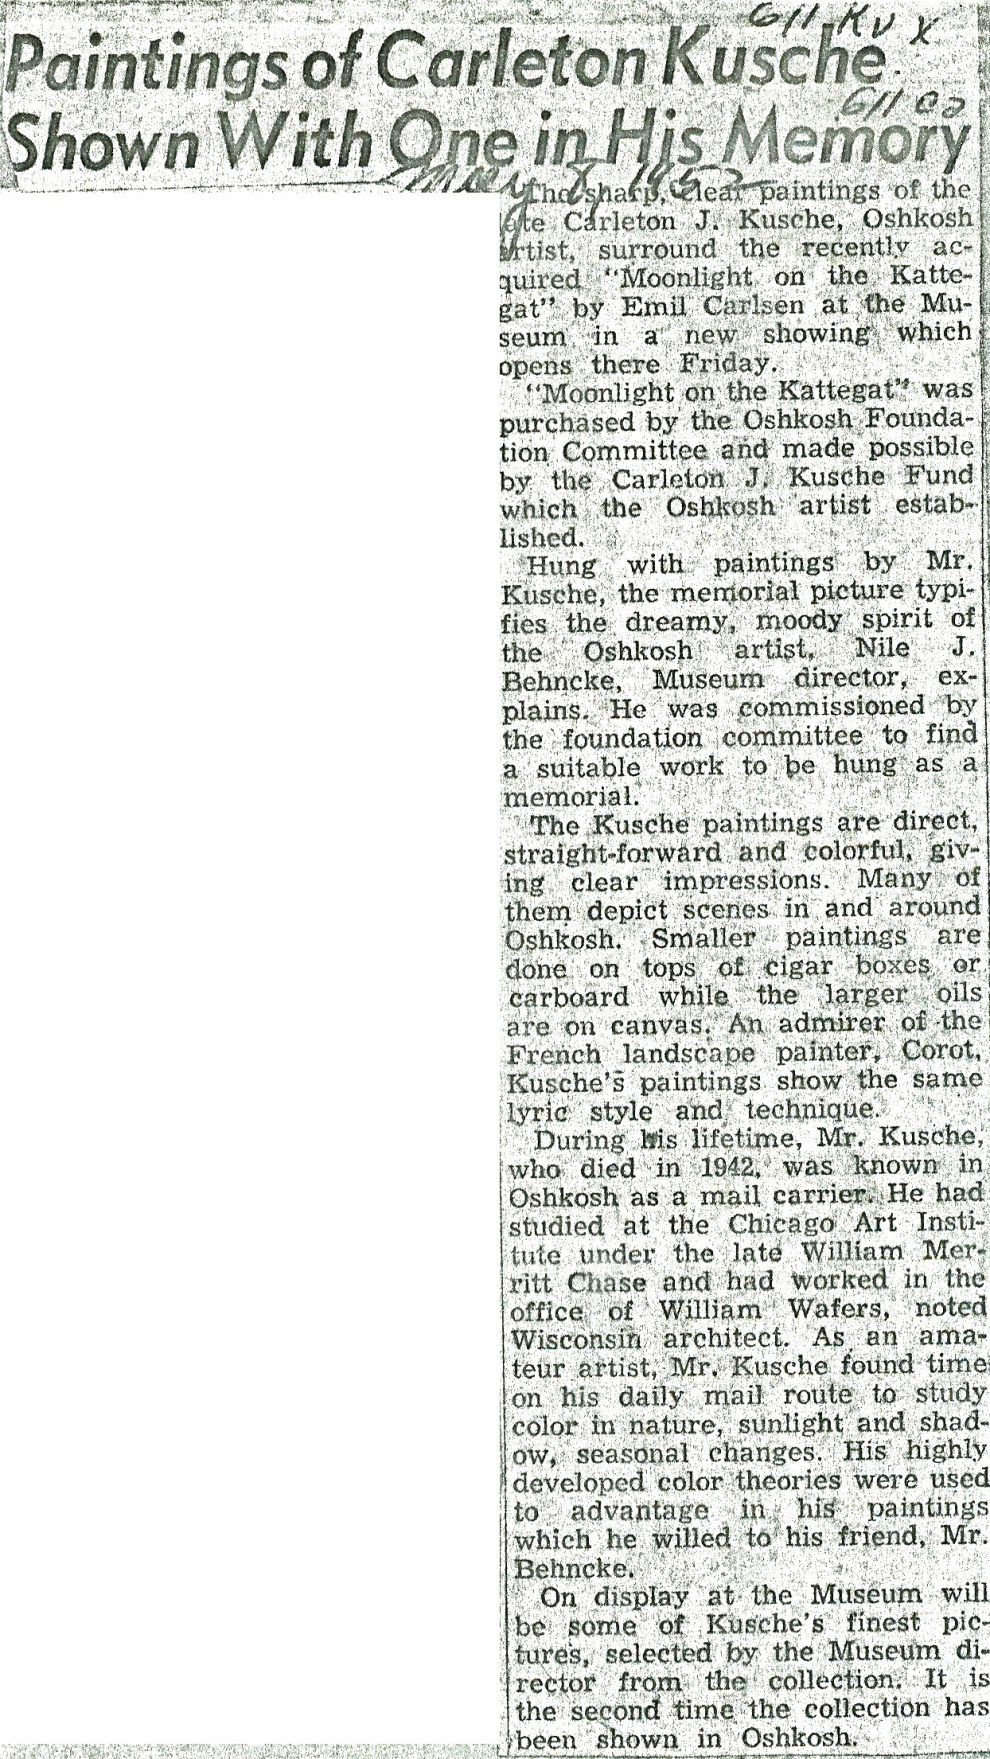 "Oshkosh Daily Northwestern, Oshkosh, WI, ""Carlsen Painting is Hung In Museum to Pay Honor to Kusche"", May 7, 1952"